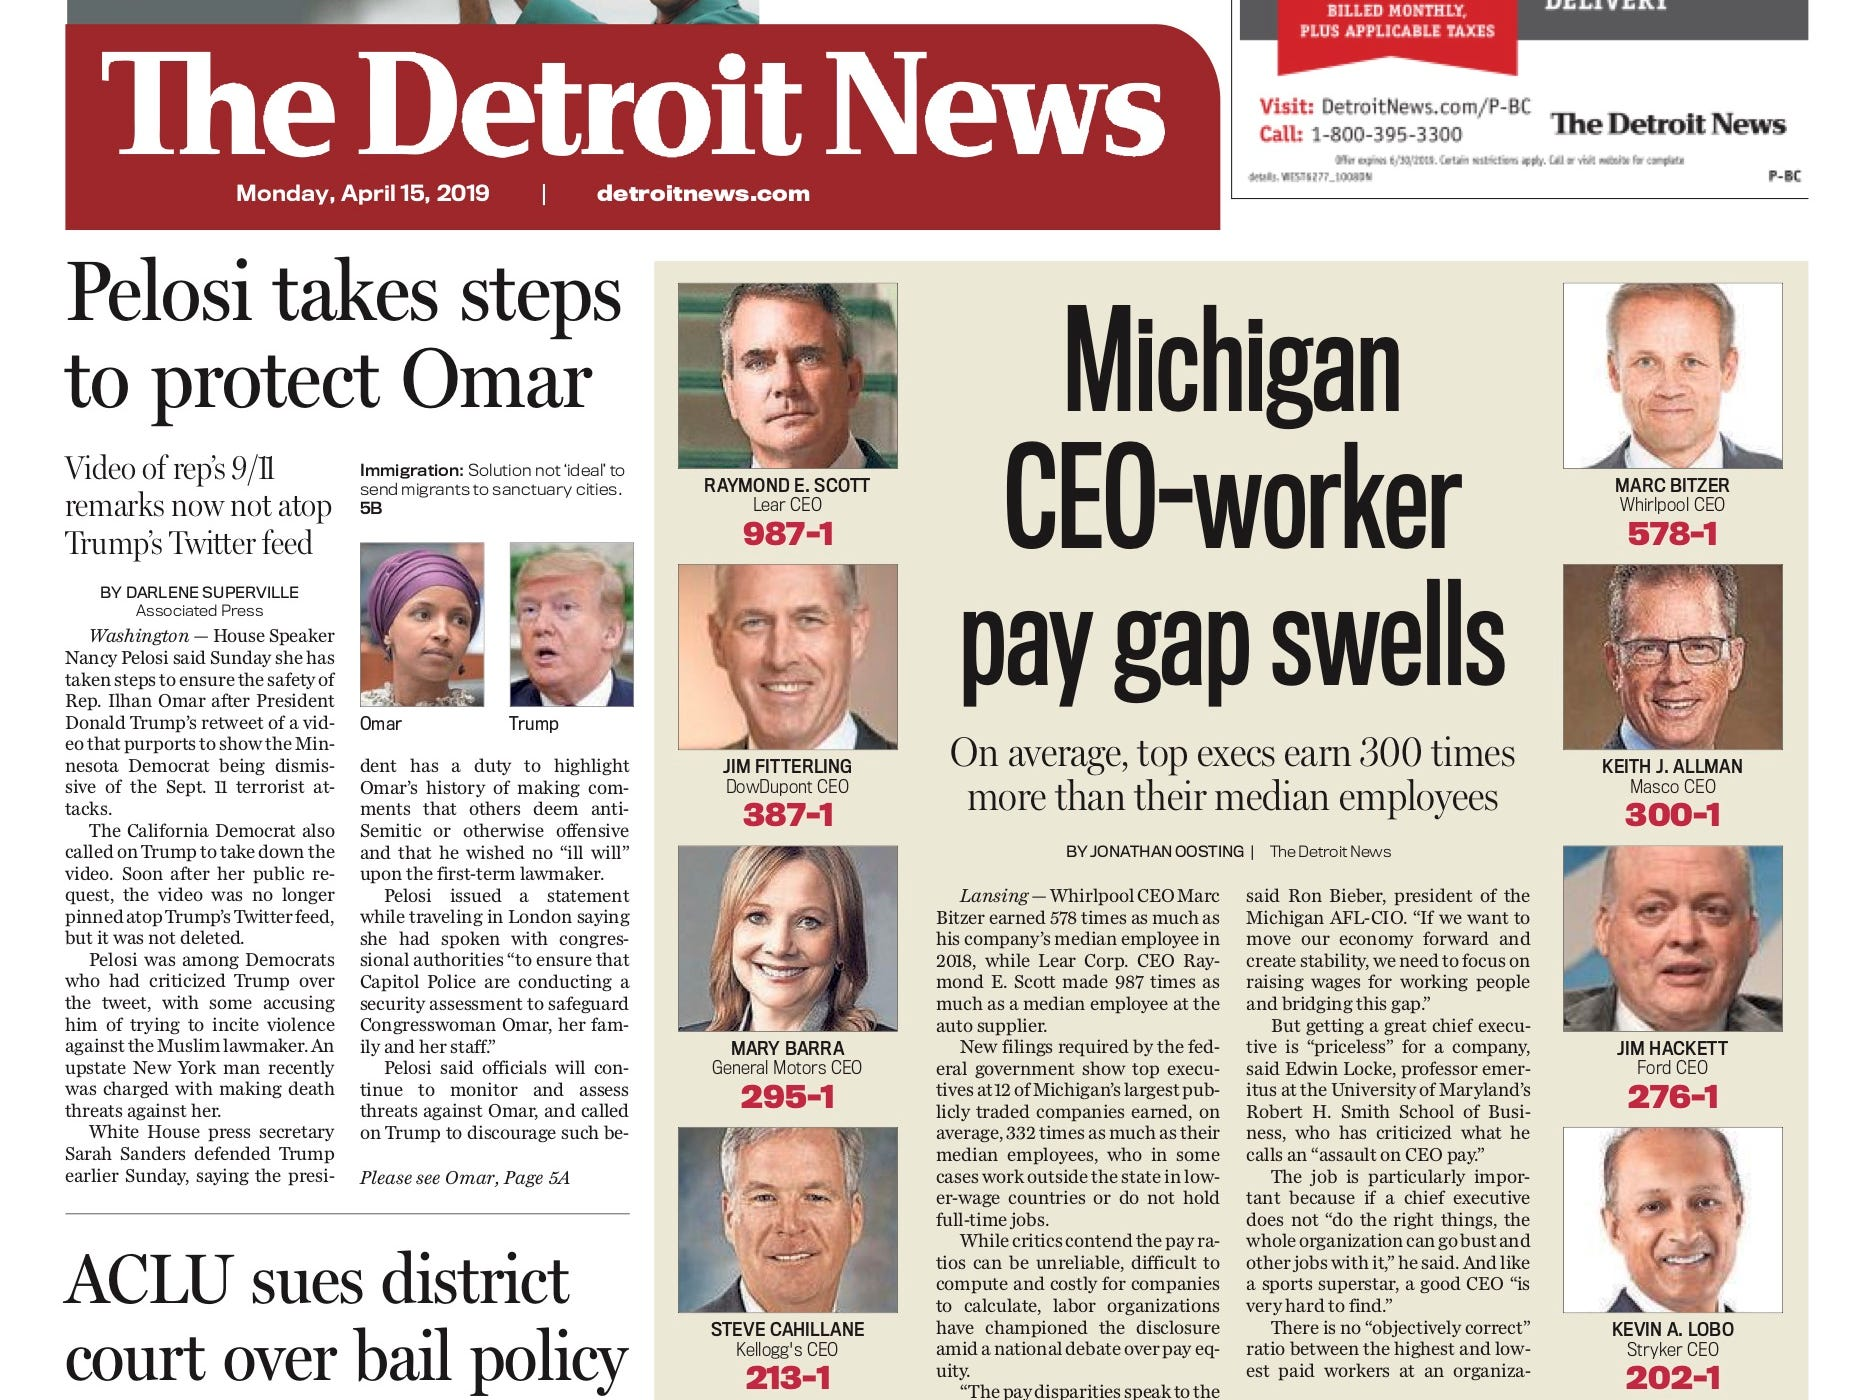 The front page of the Detroit News on April 15, 2019.